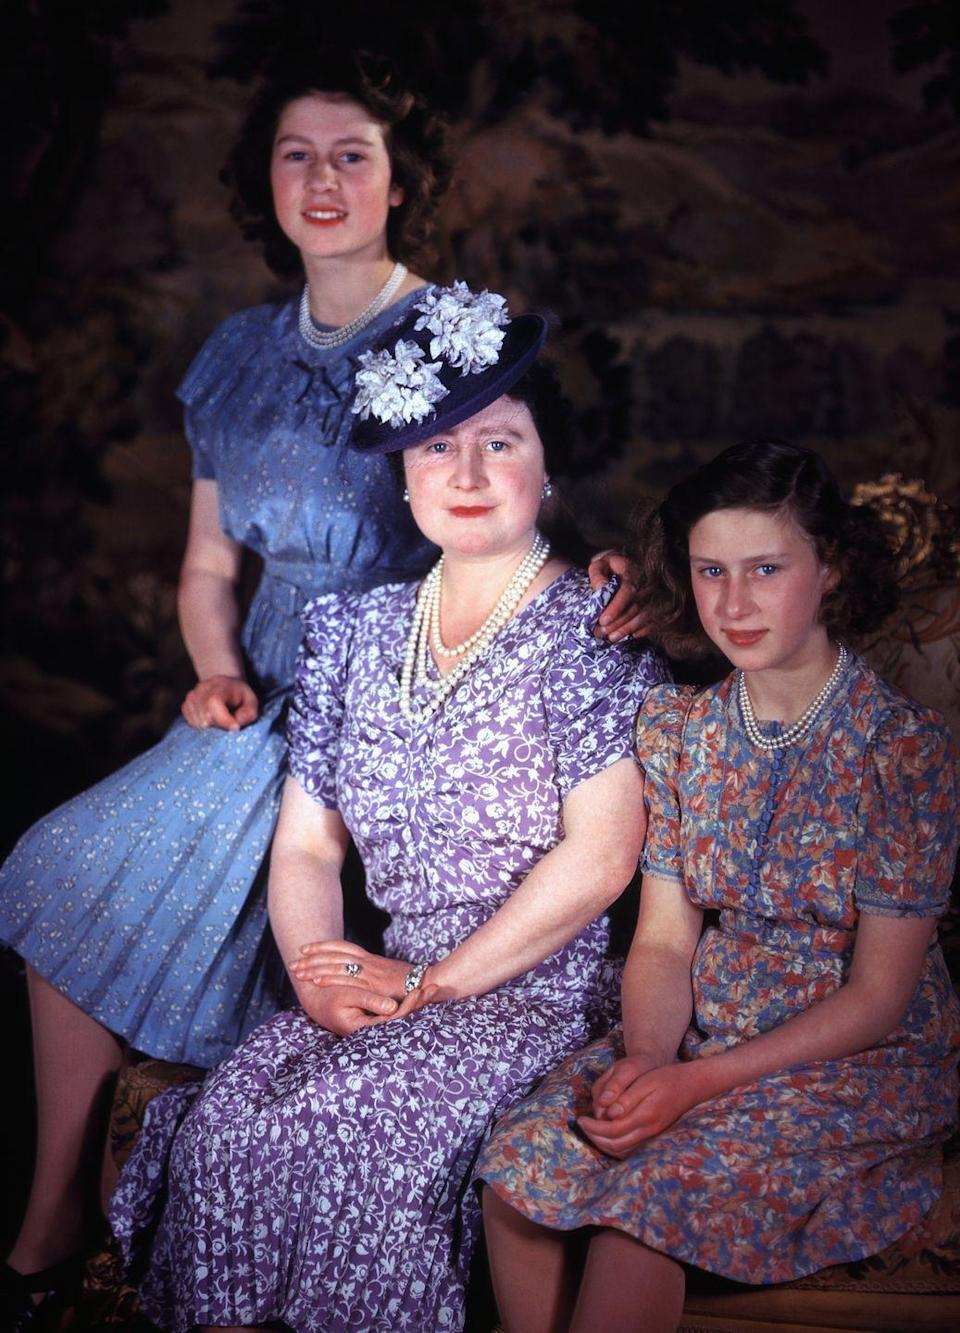 <p>A young Queen Elizabeth II and Princess Margaret pose with Queen Elizabeth the Queen Mother. The mother-daughter trio sport floral '40s-style dresses and matching pearls for the portrait.</p>